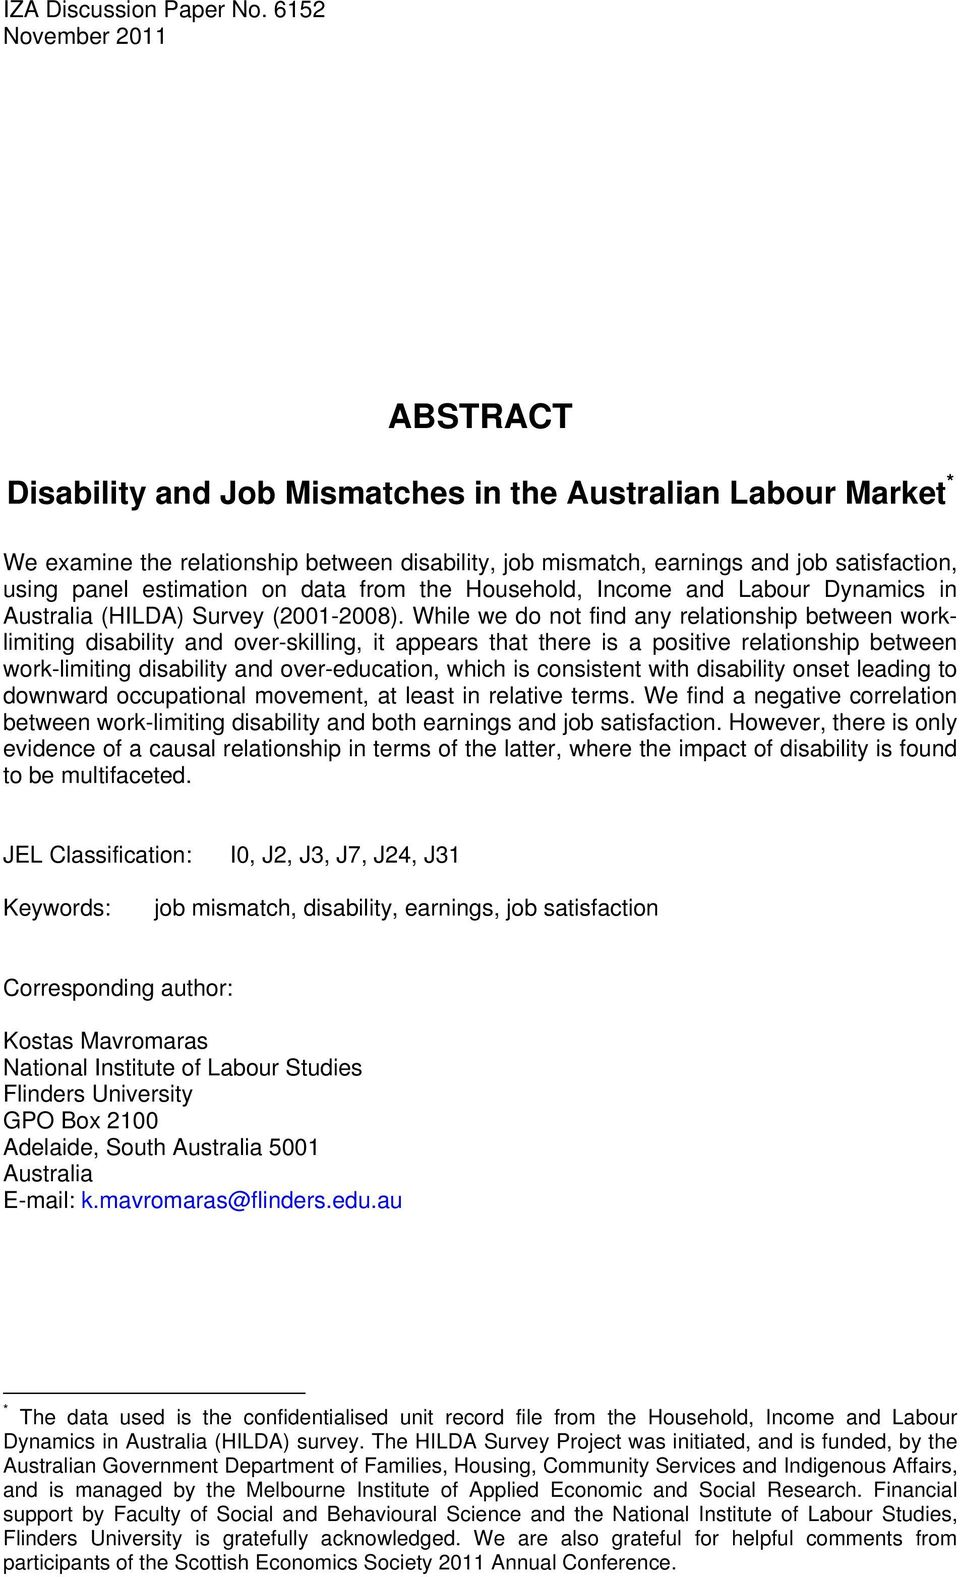 estimation on data from the Household, Income and Labour Dynamics in Australia (HILDA) Survey (2001-2008).